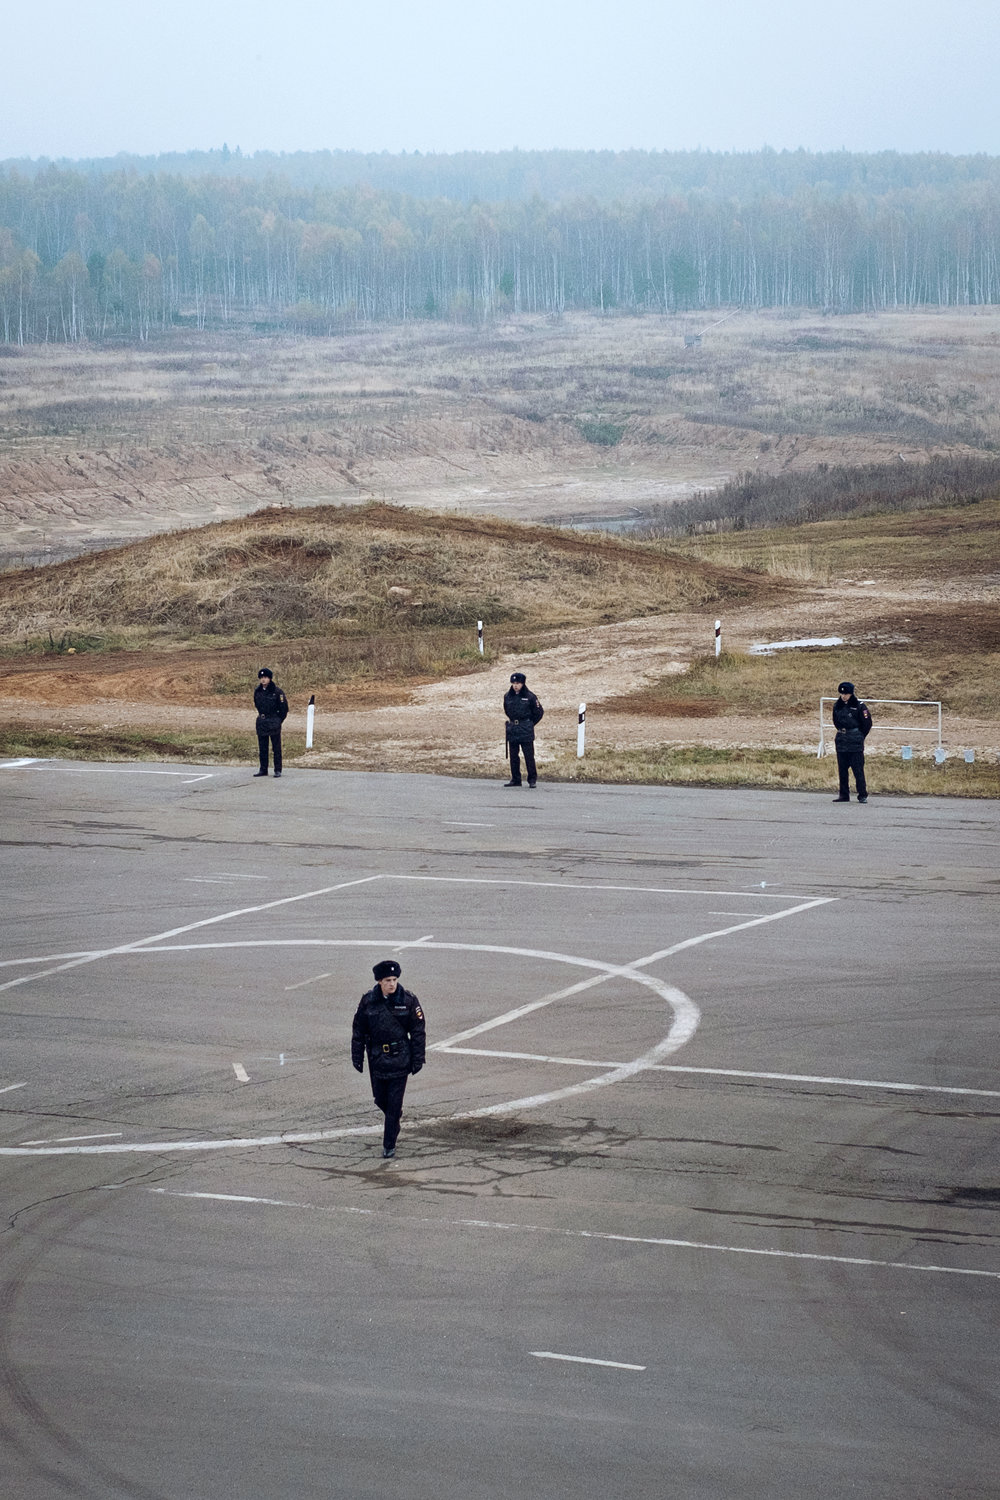 """Russian police at the 19th homeland security exhibition """"INTERPOLITEX"""". Military base, Russia,2015."""